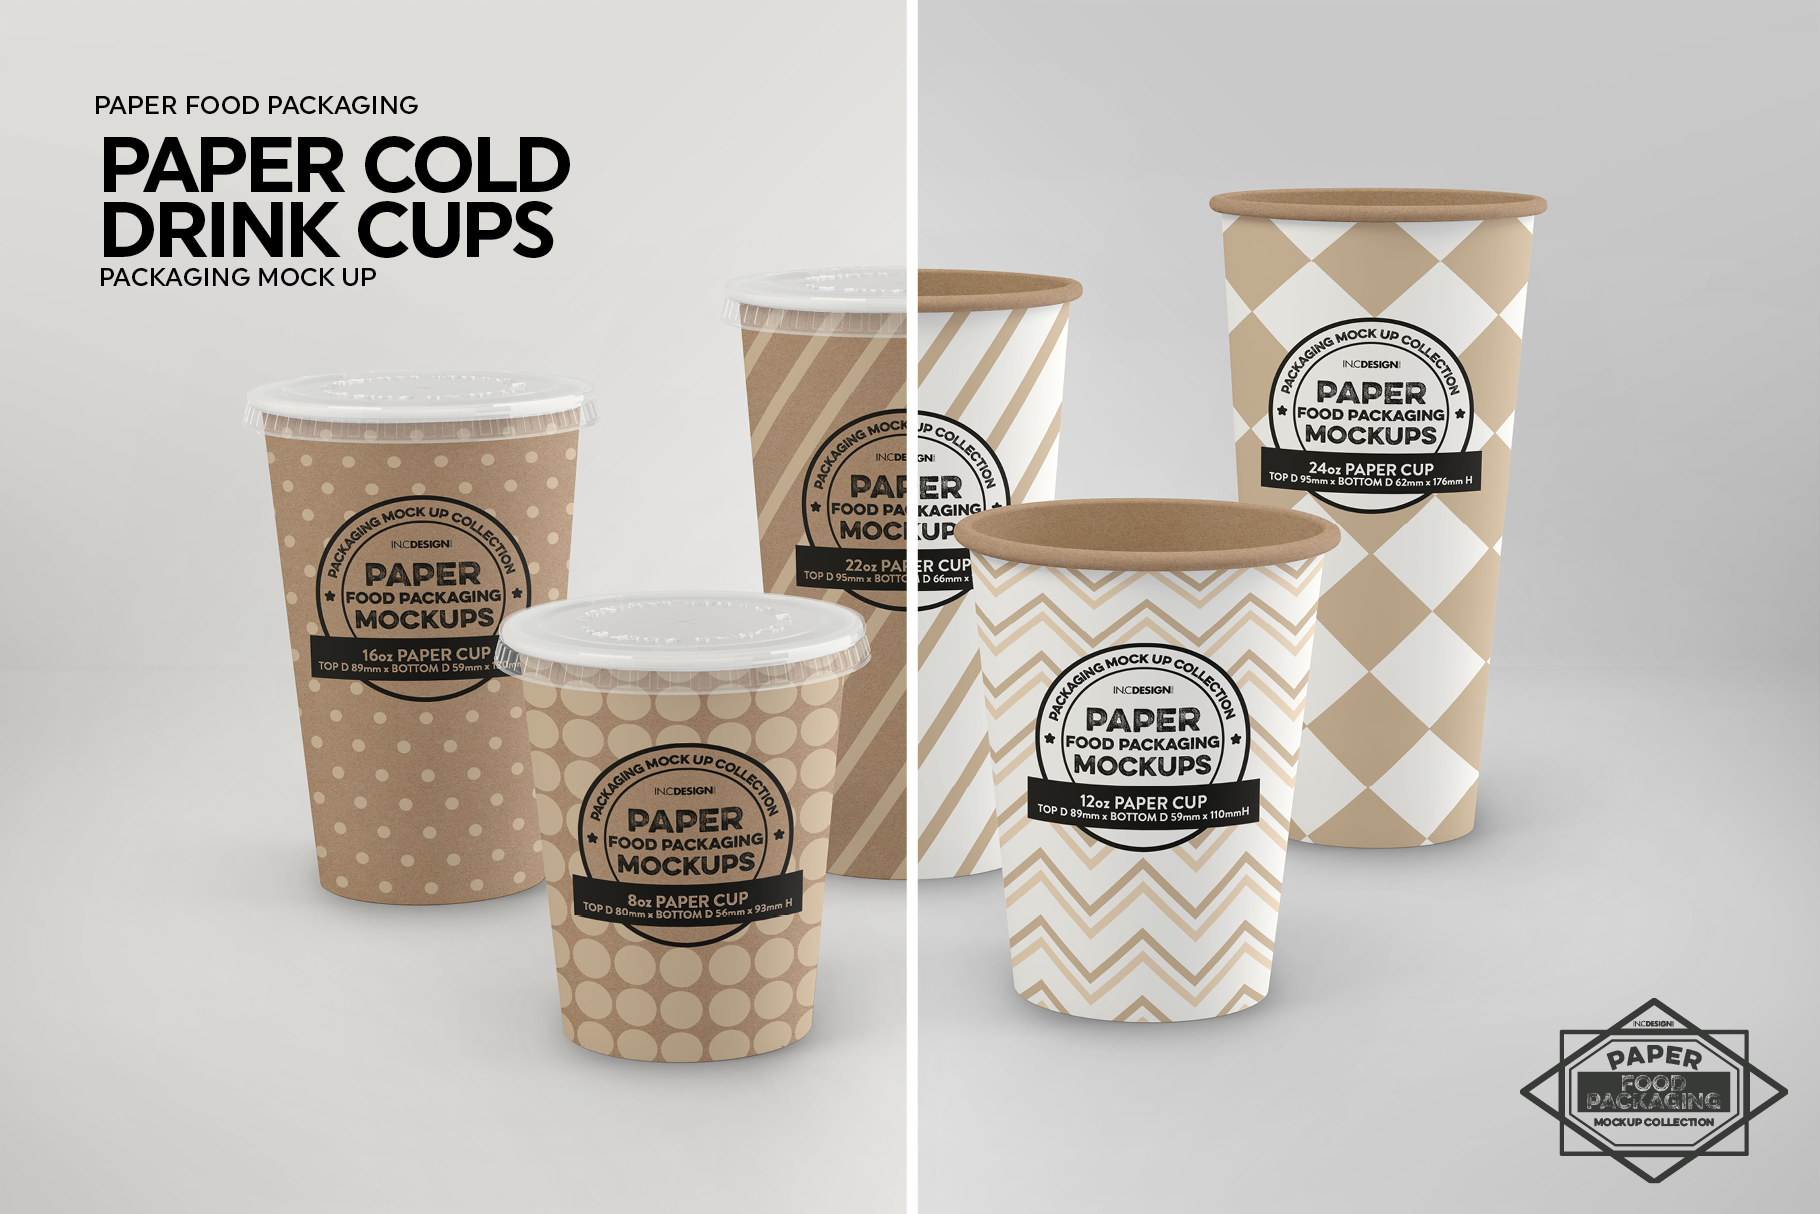 Paper Drink Cups Packaging Mockup example image 3